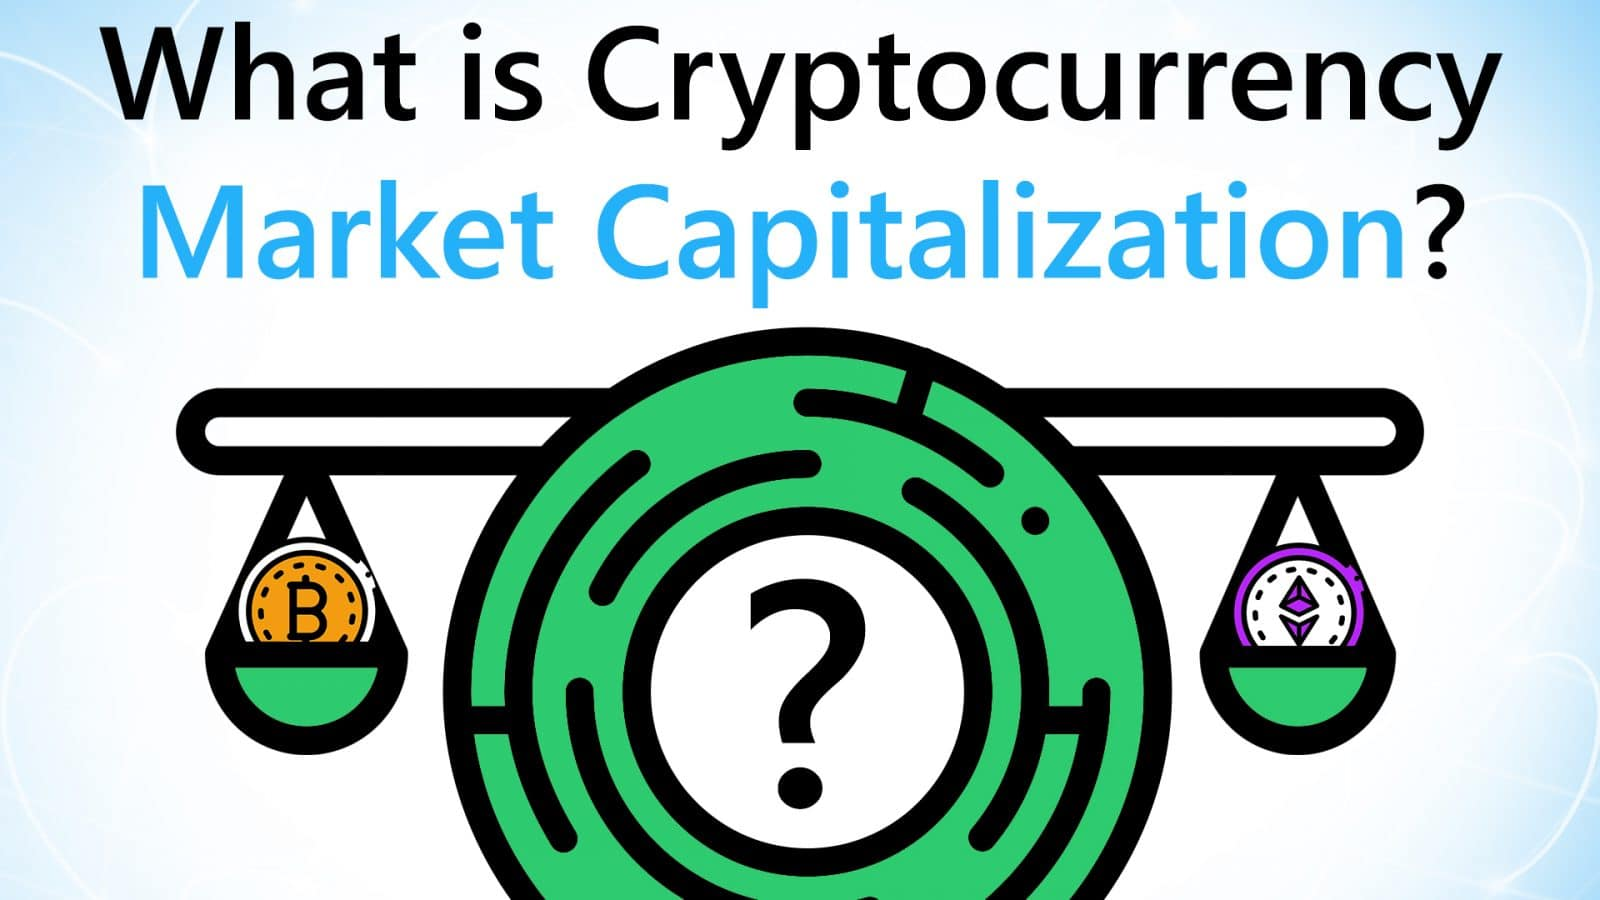 Video Guide: What is Cryptocurrency Market Capitalization?